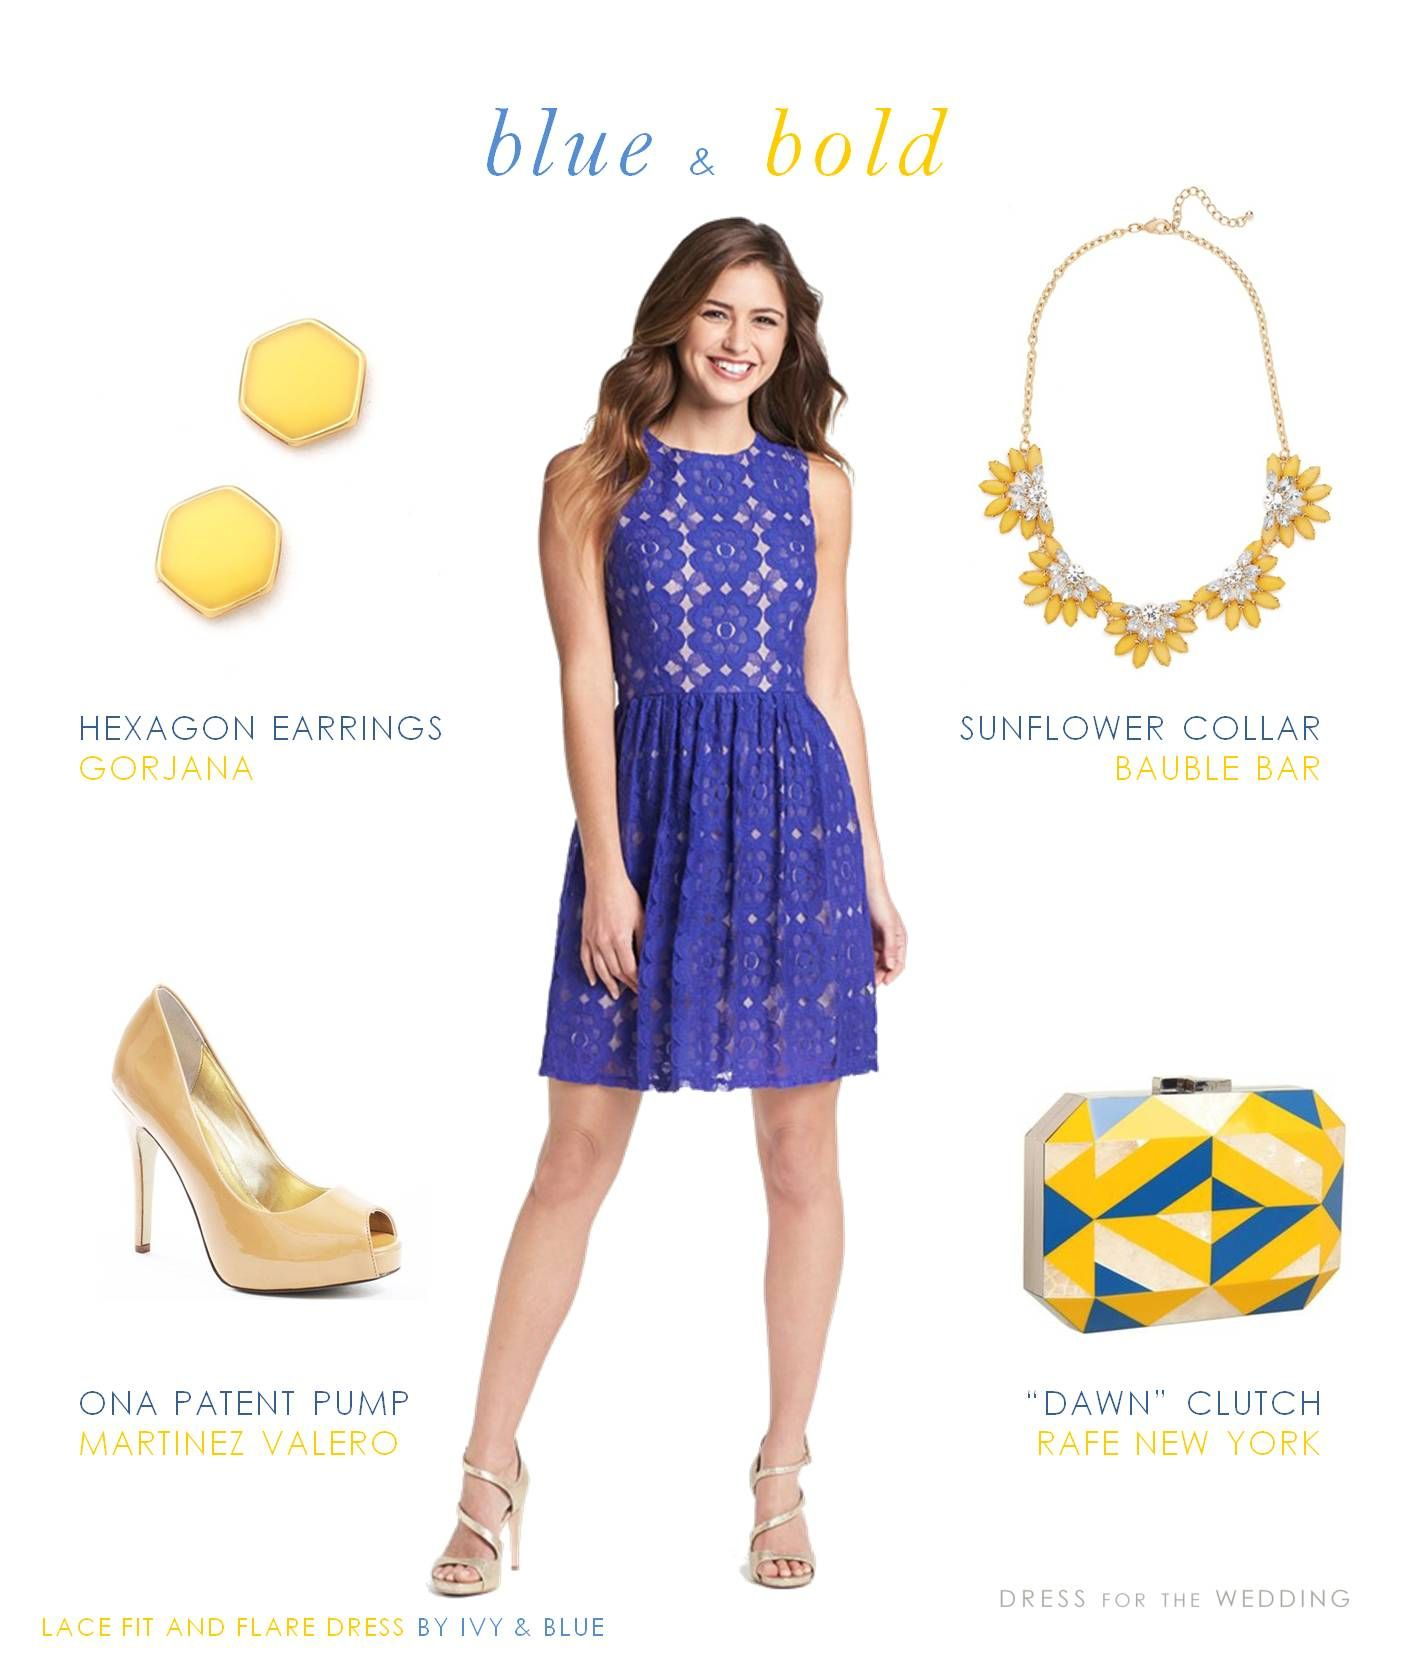 Black dress yellow accessories - What Color Accessories To Wear With Yellow Dress